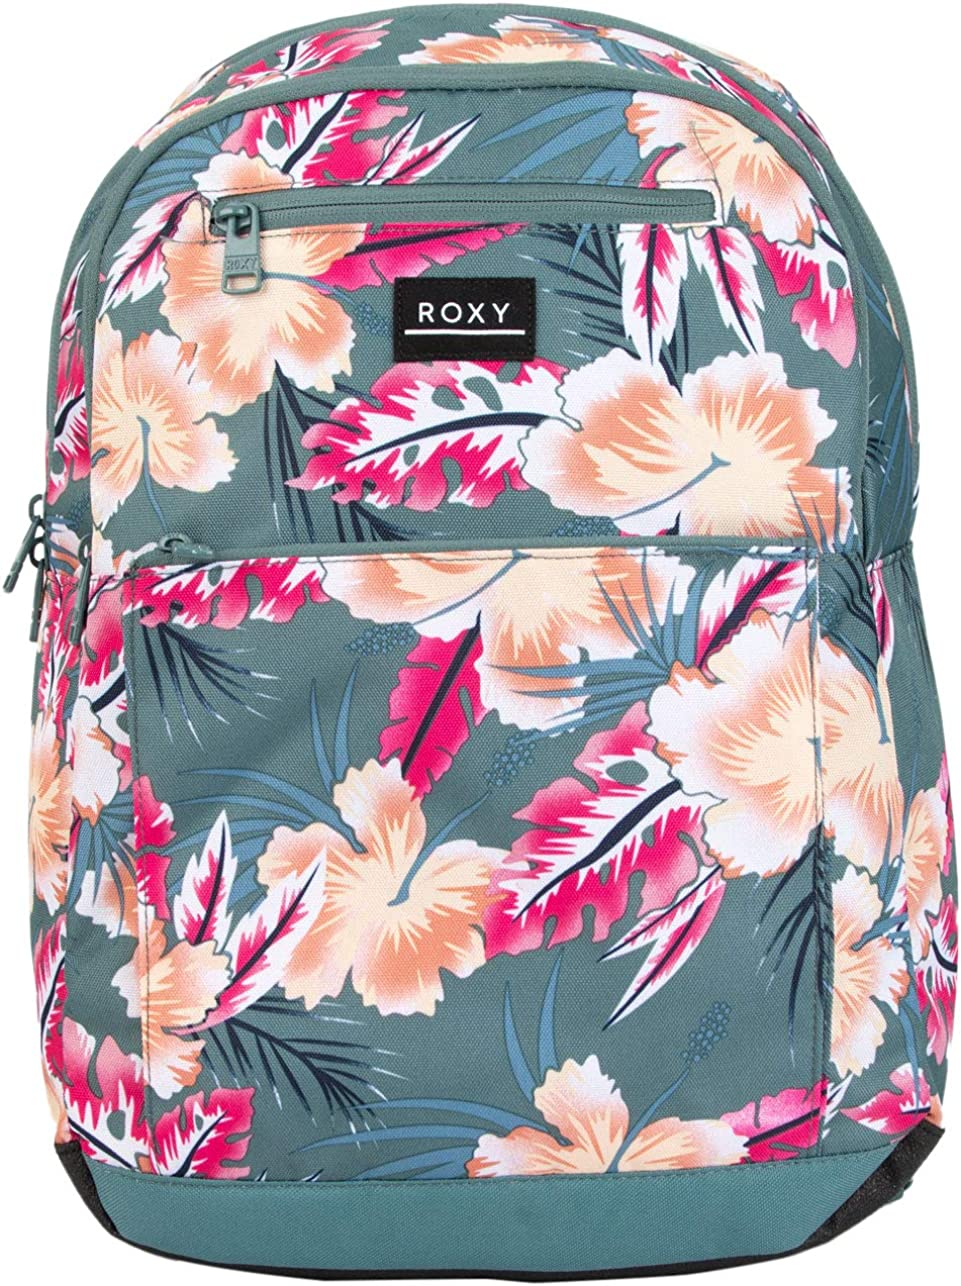 Roxy Women's Here You are Backpack